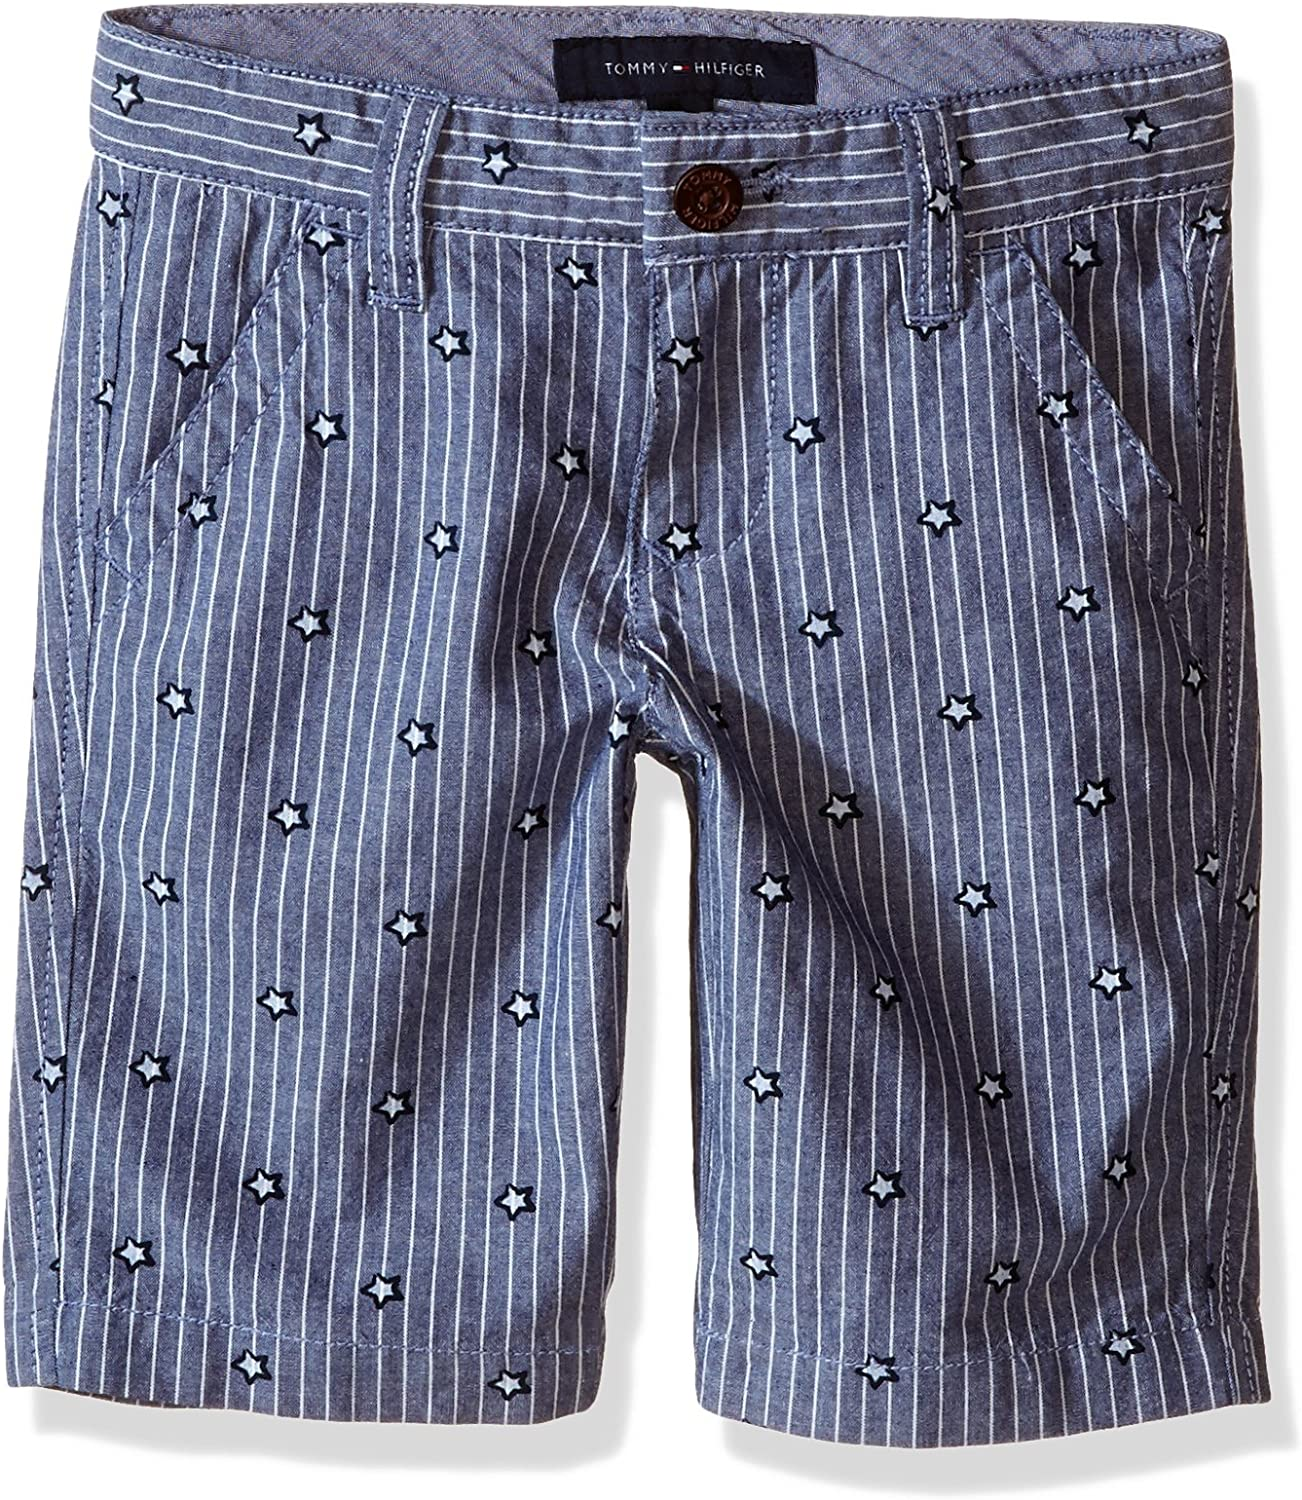 Tommy Hilfiger Boys Stars and Stripes Flat-Front Short